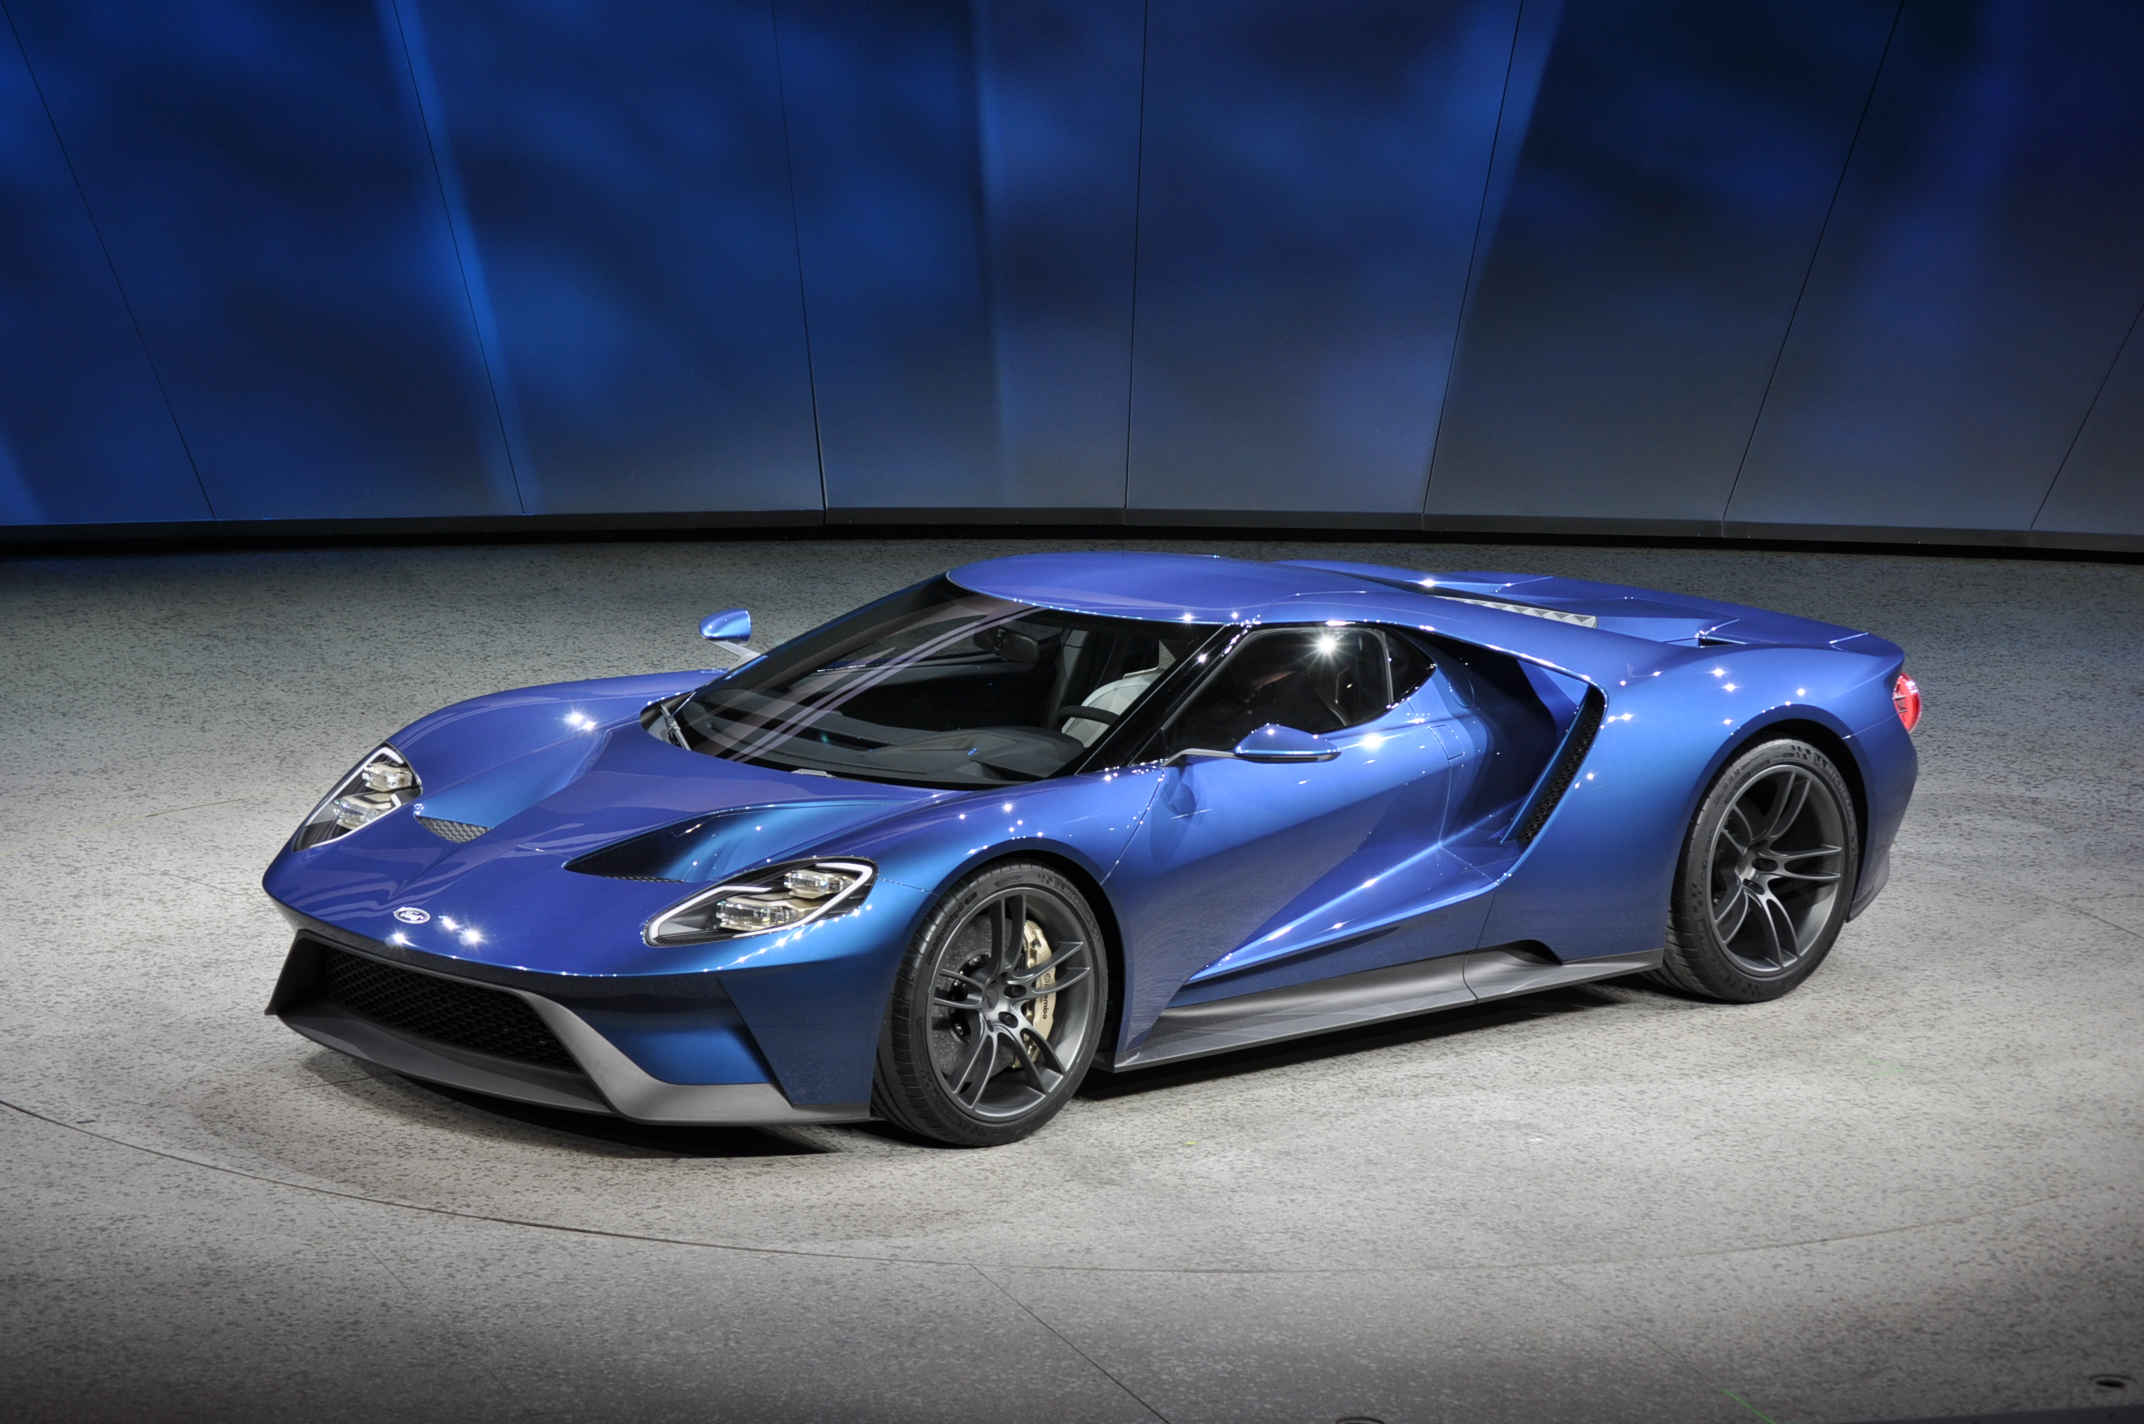 Ford GT V-6 sips more gas than Viper V-10, according to EPA